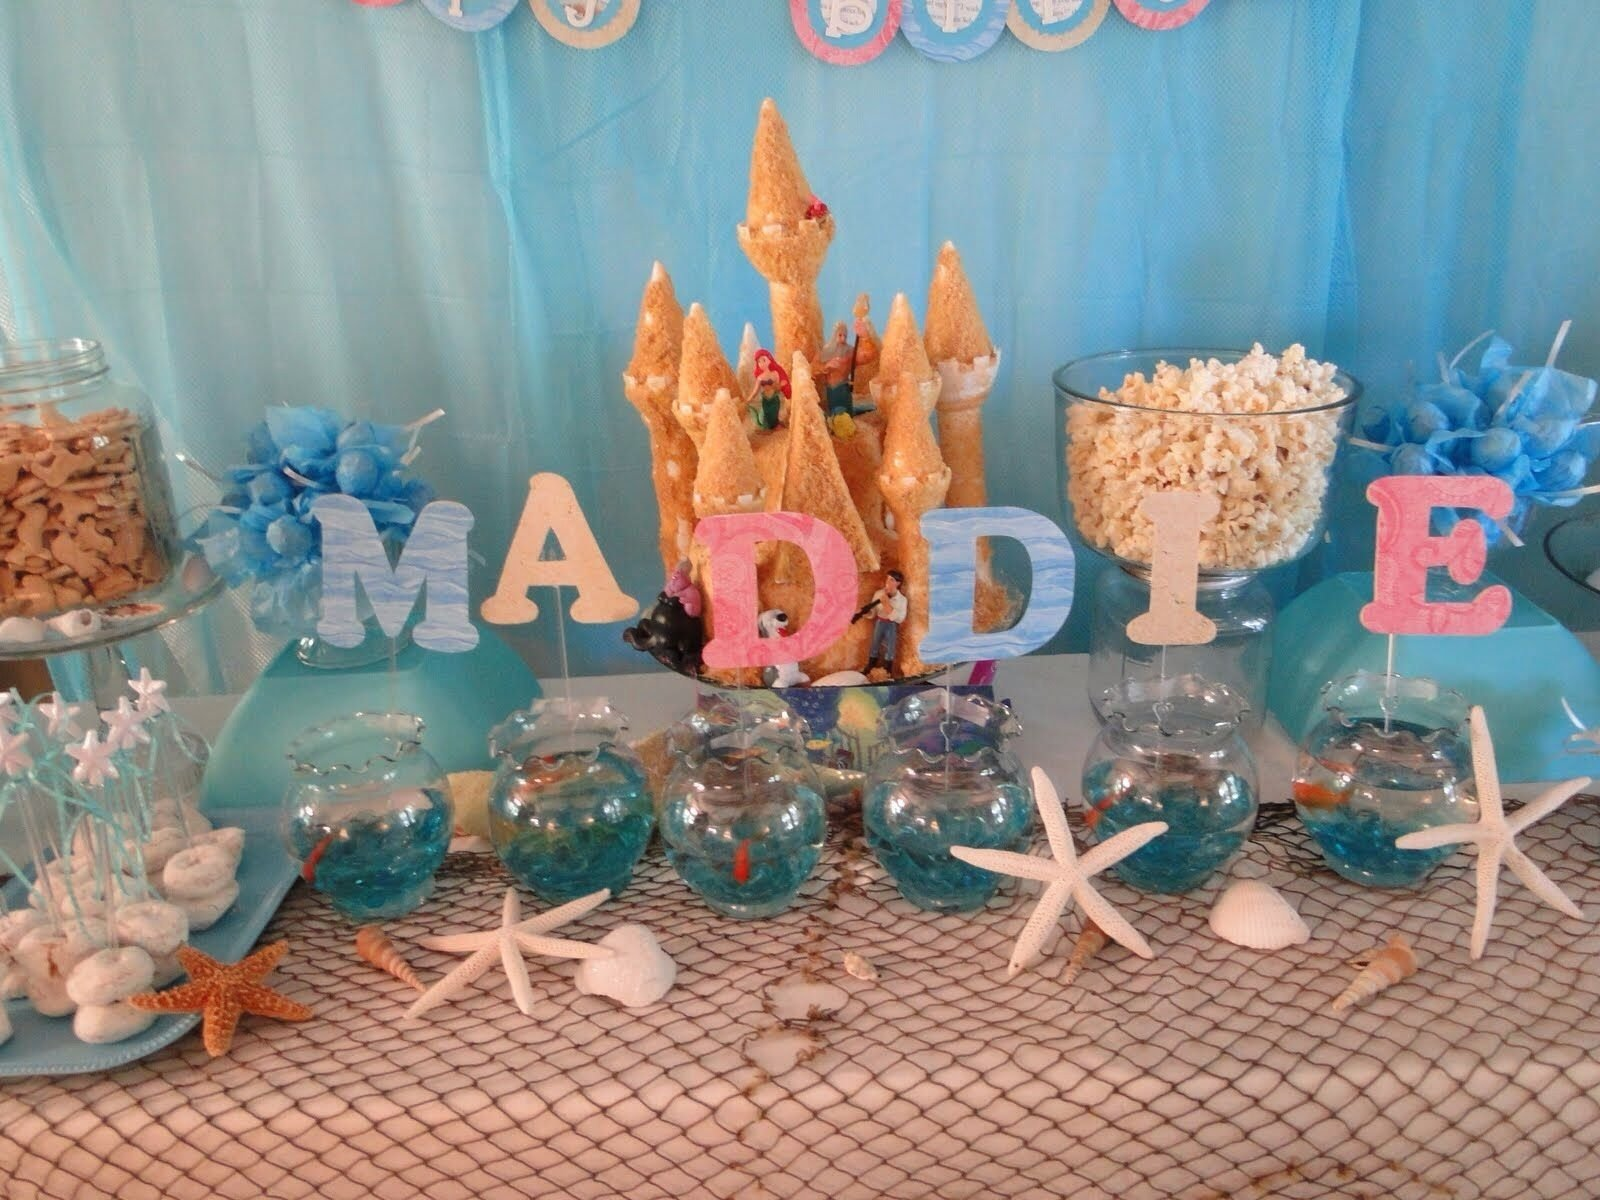 10 Great The Little Mermaid Birthday Party Ideas mermaid baby shower theme shower time pinterest mermaid baby 2021